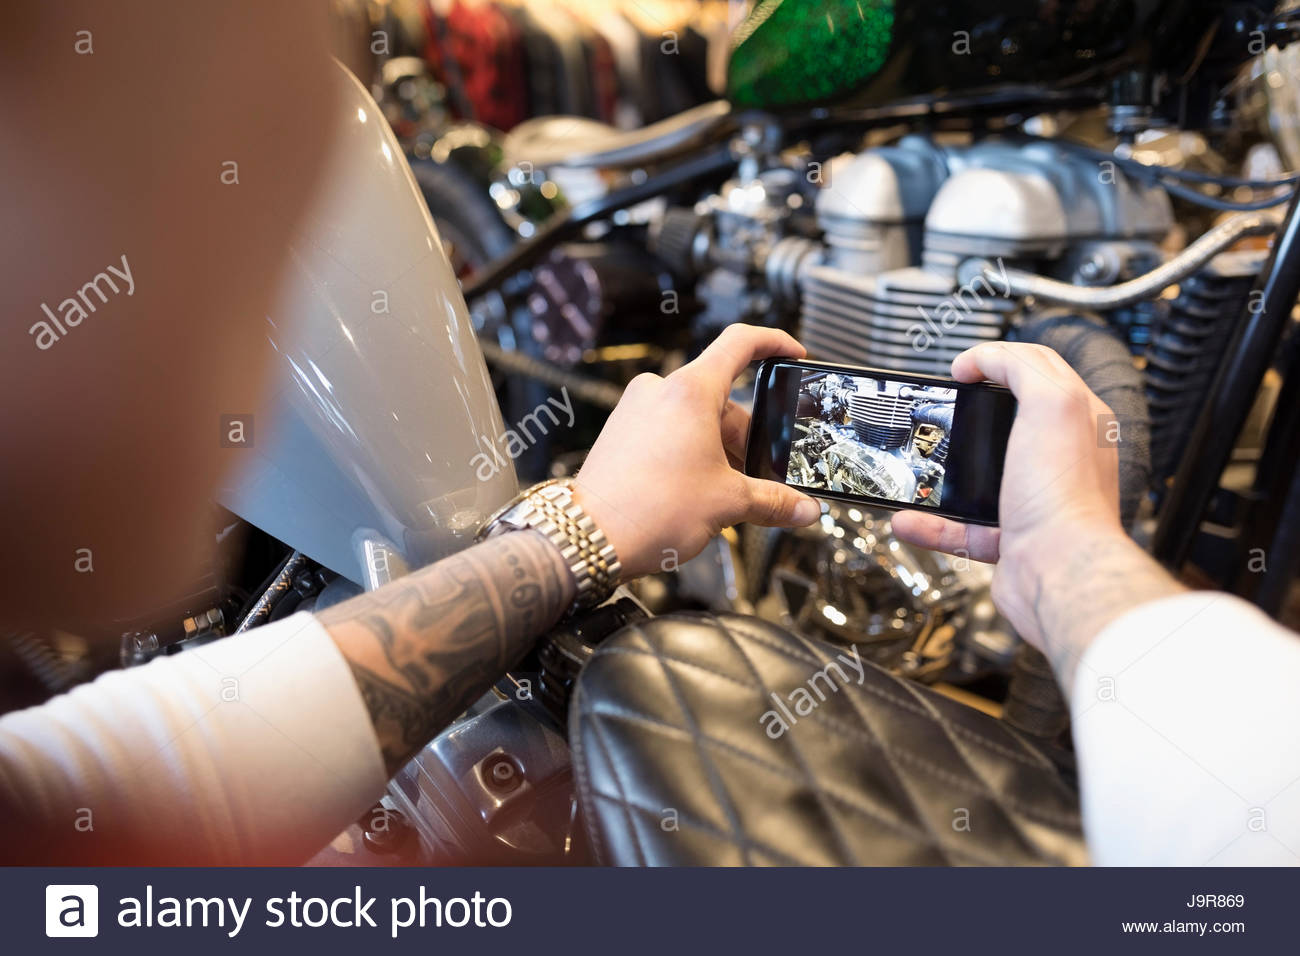 Personal perspective motorcycle mechanic with camera phone photographing engine - Stock Image